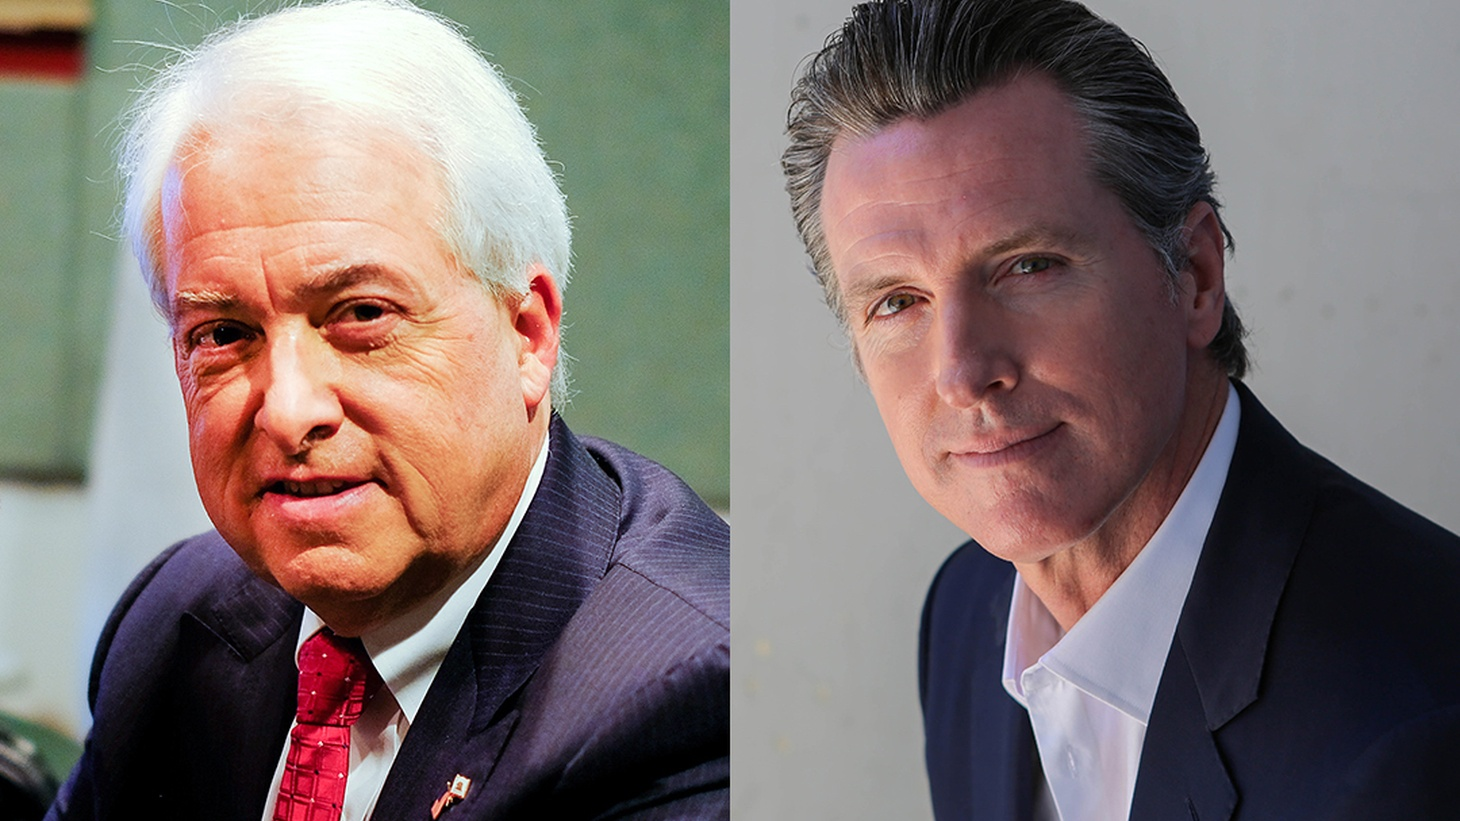 Democrat Gavin Newsom and Republican John Cox won the most votes in Tuesday's primary election. They will face off in November to be California's next governor.